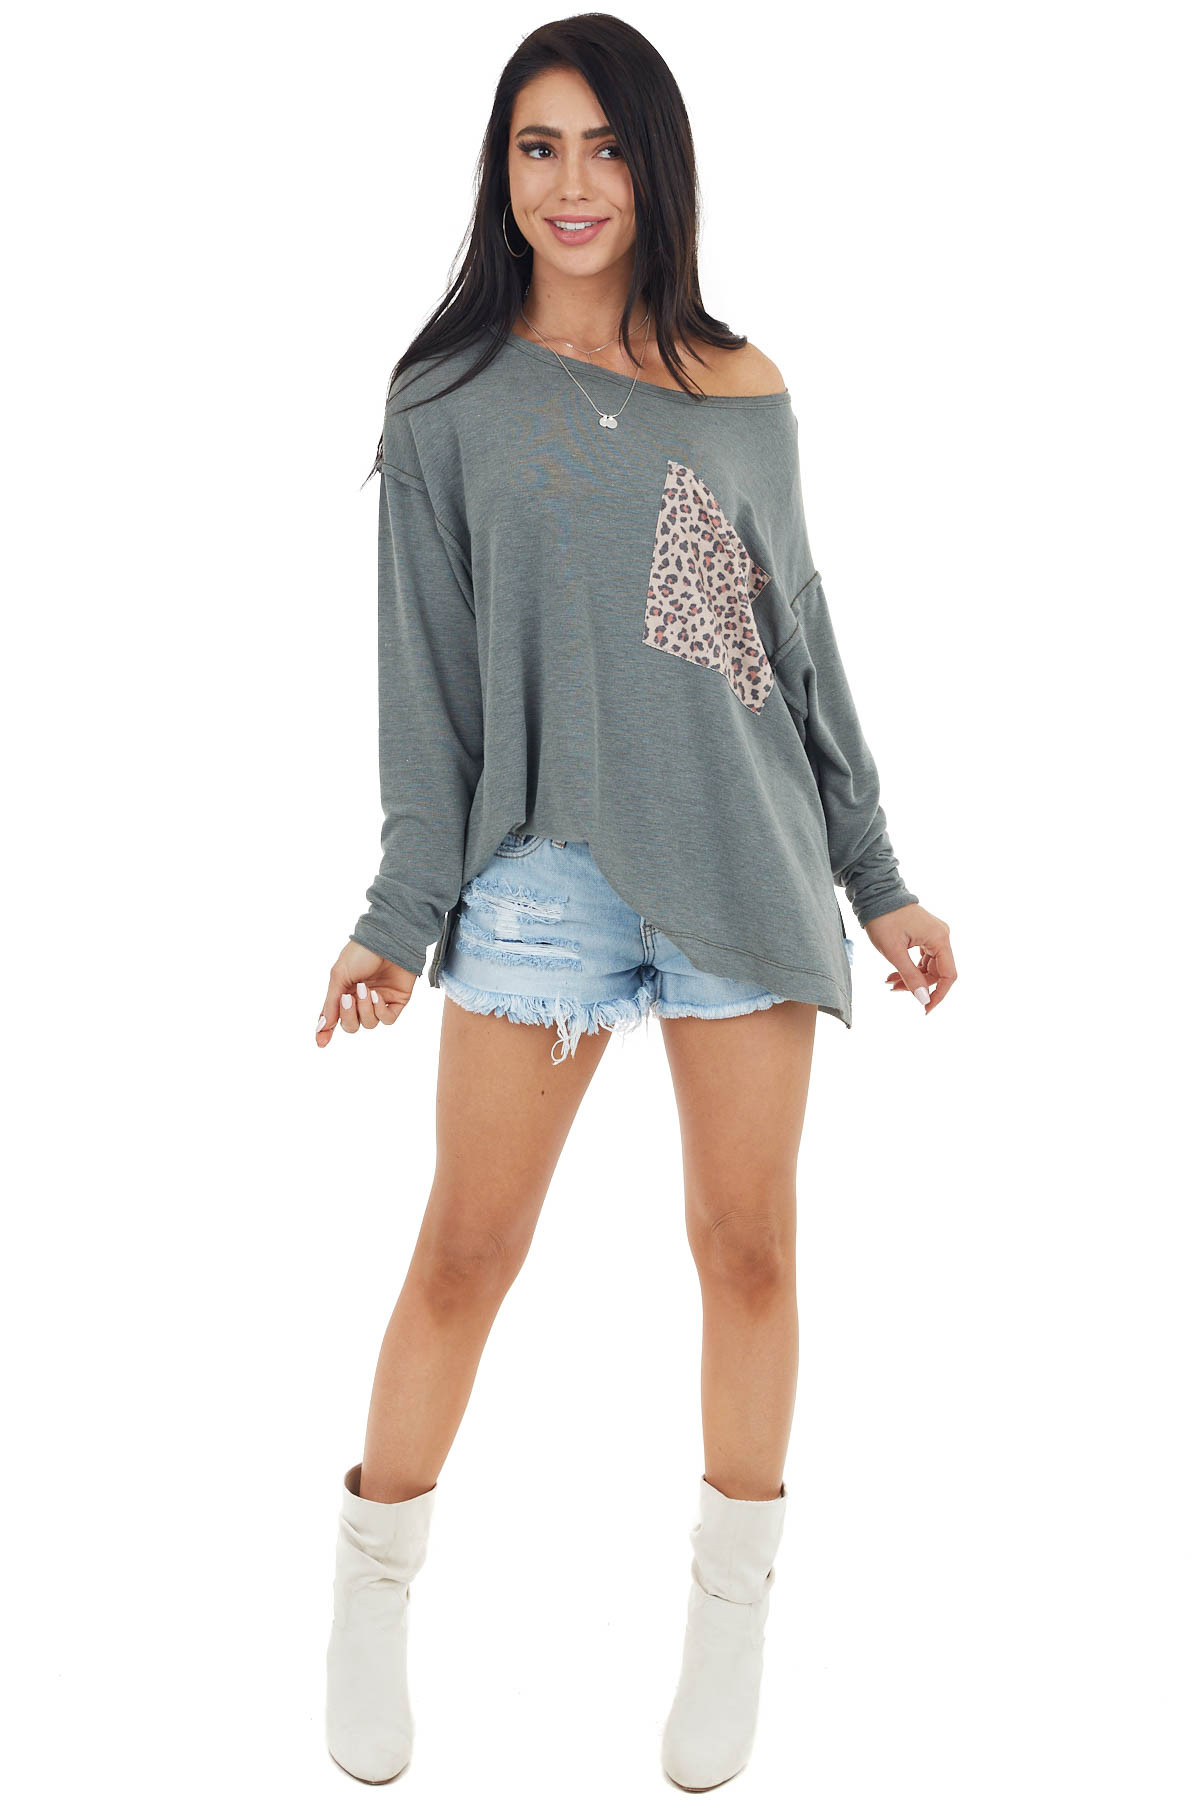 Olive Oversized Knit Top with Large Leopard Print Pocket